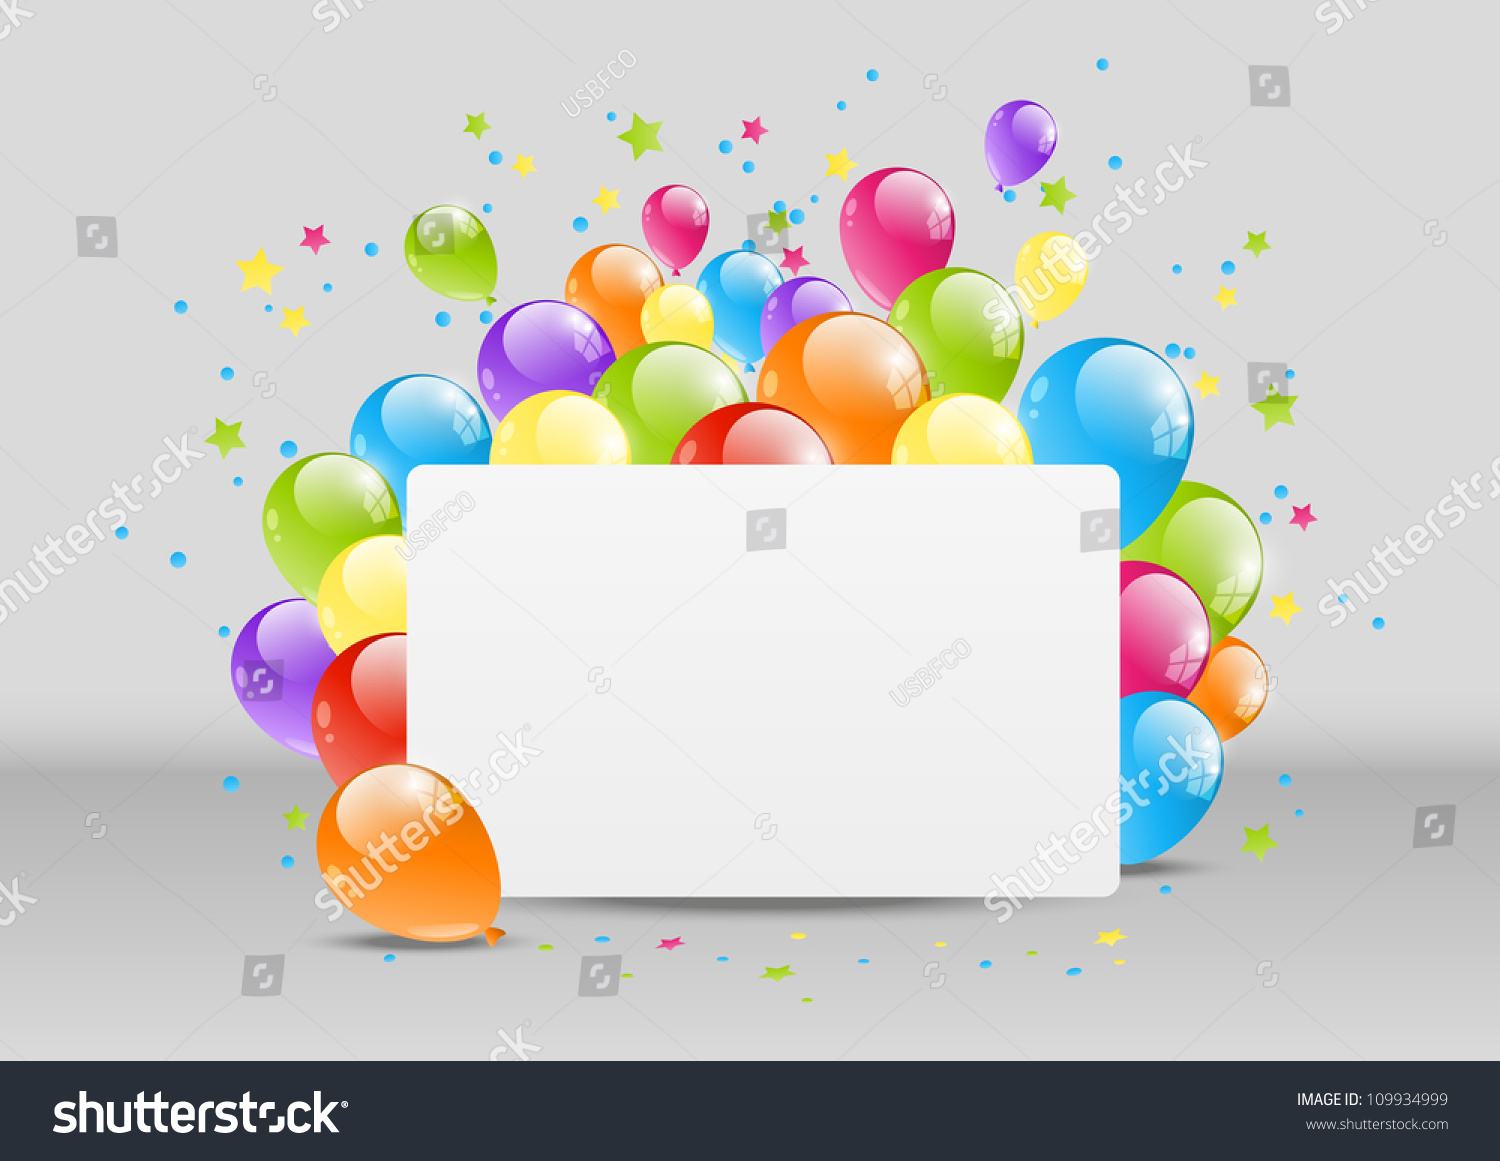 50th anniversary powerpoint template choice image - templates, Powerpoint templates